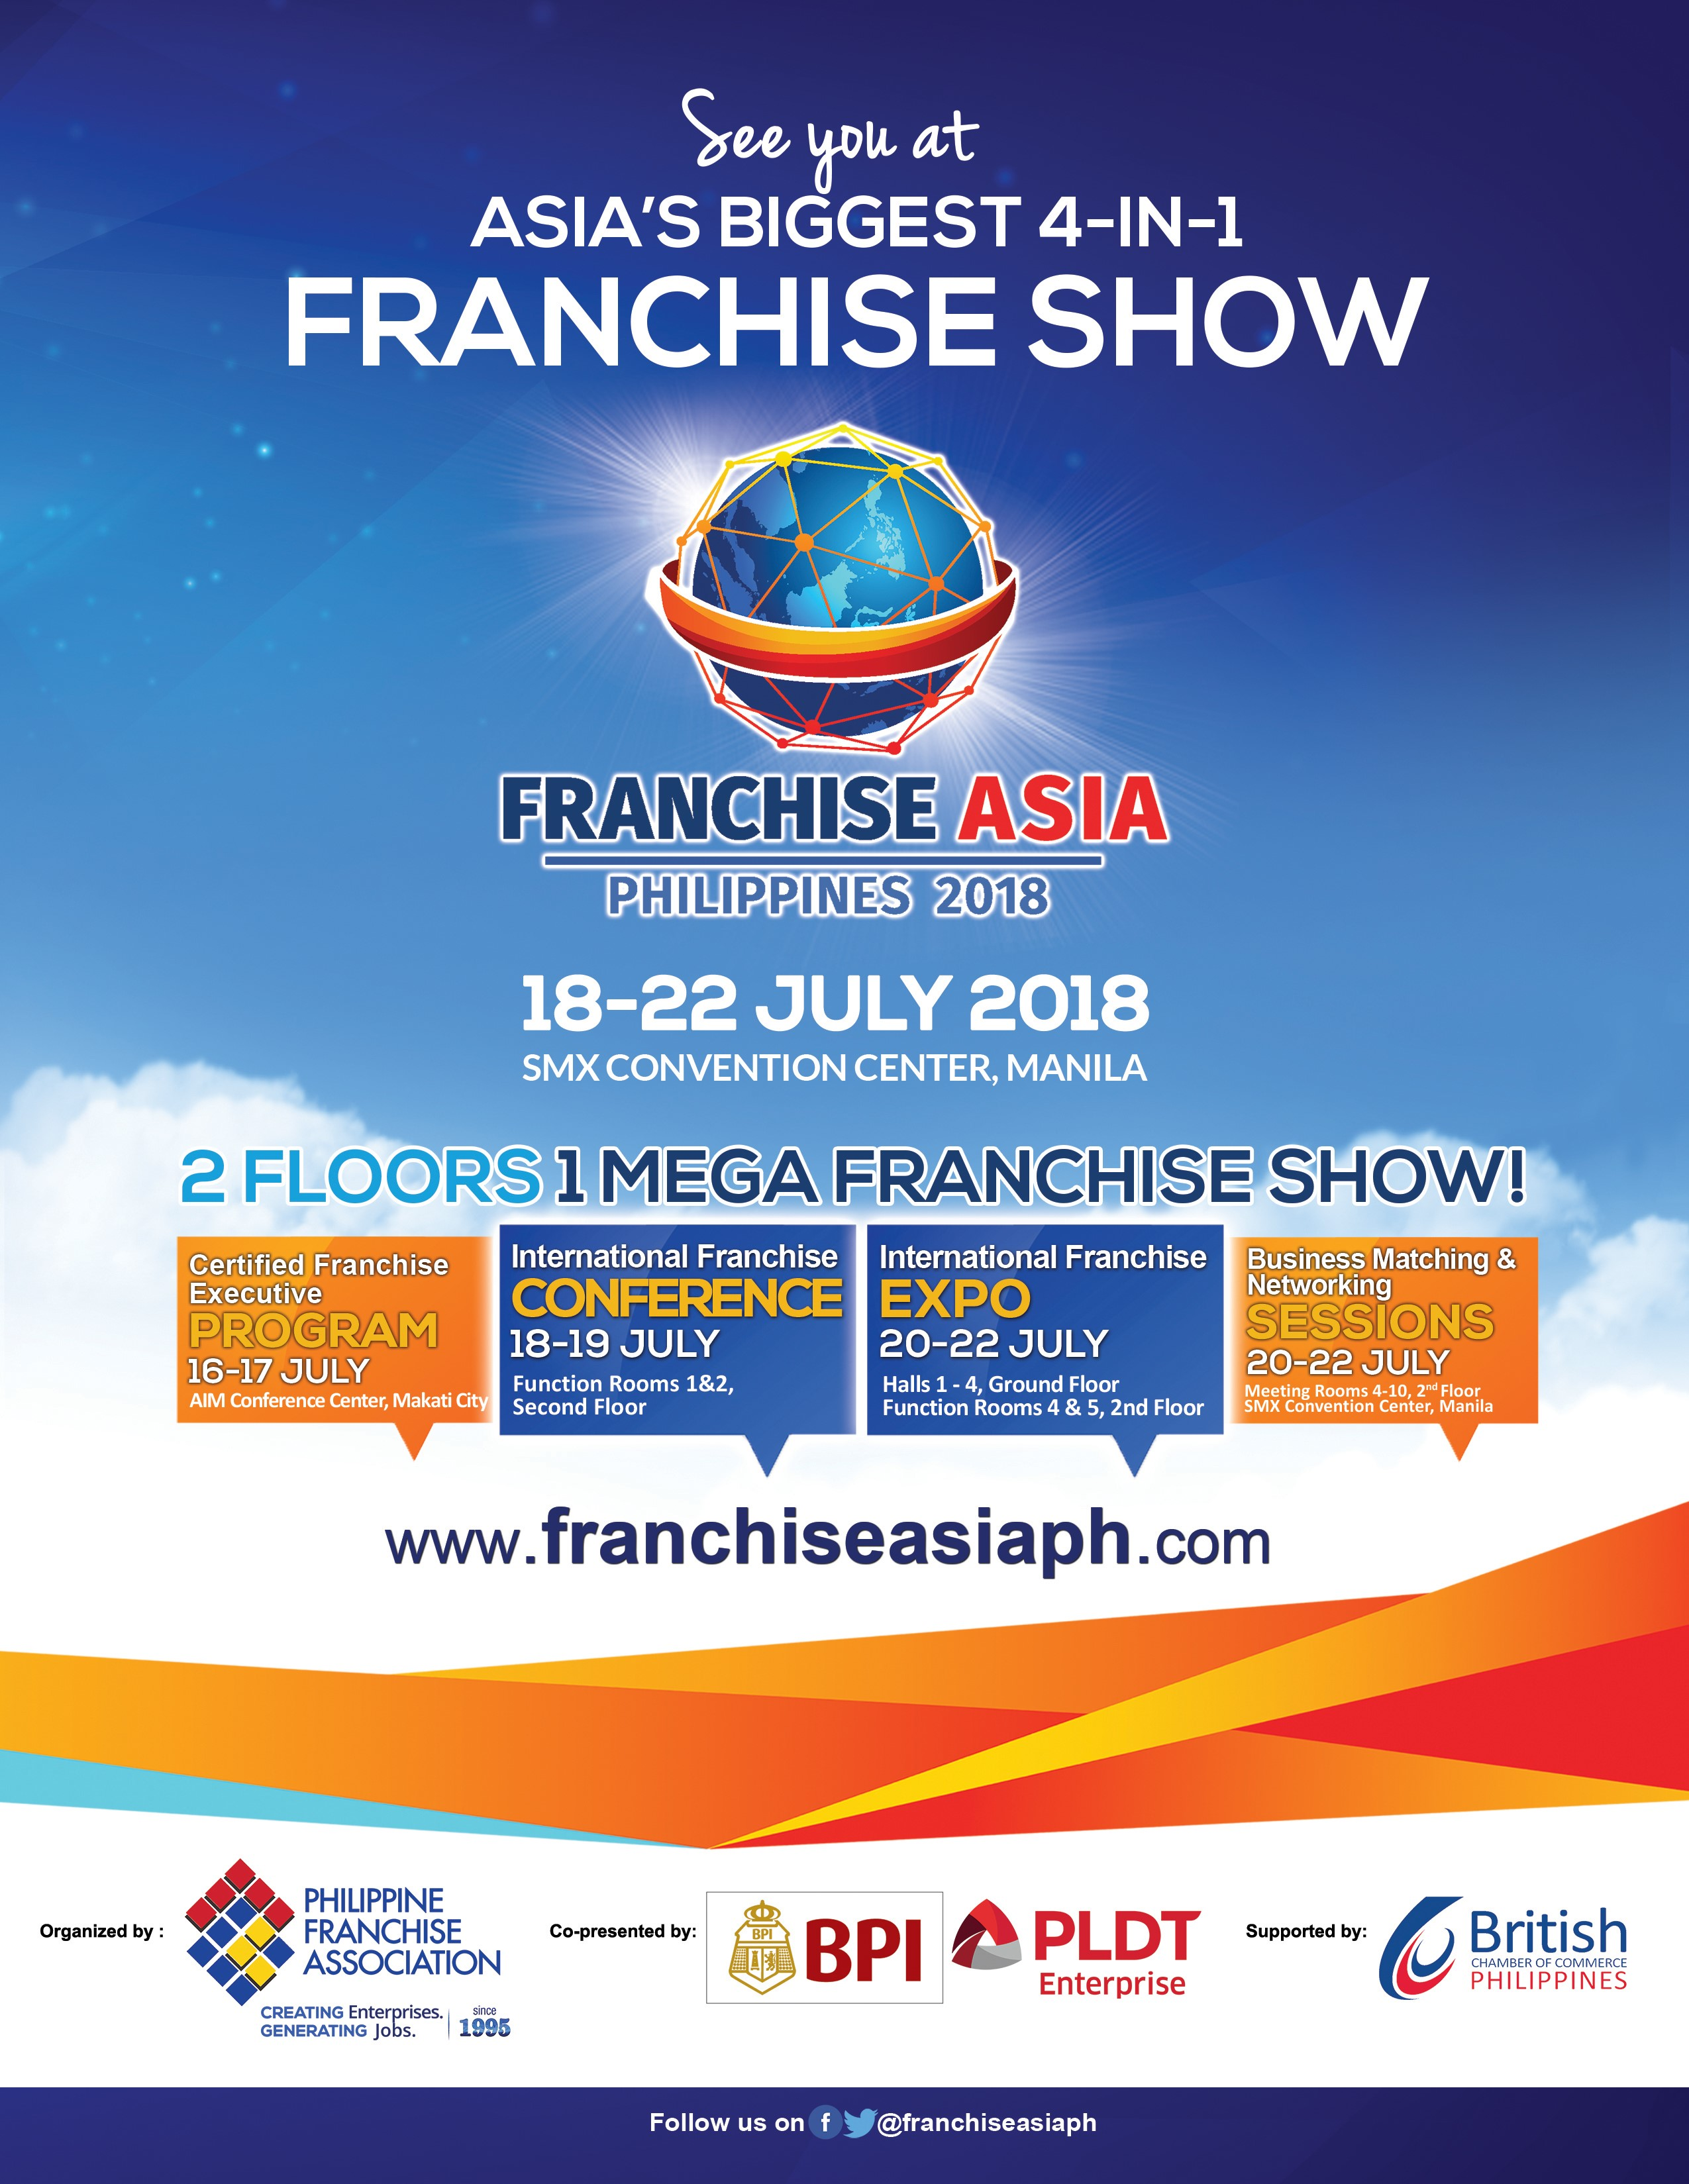 Franchise Asia Philippines 2018